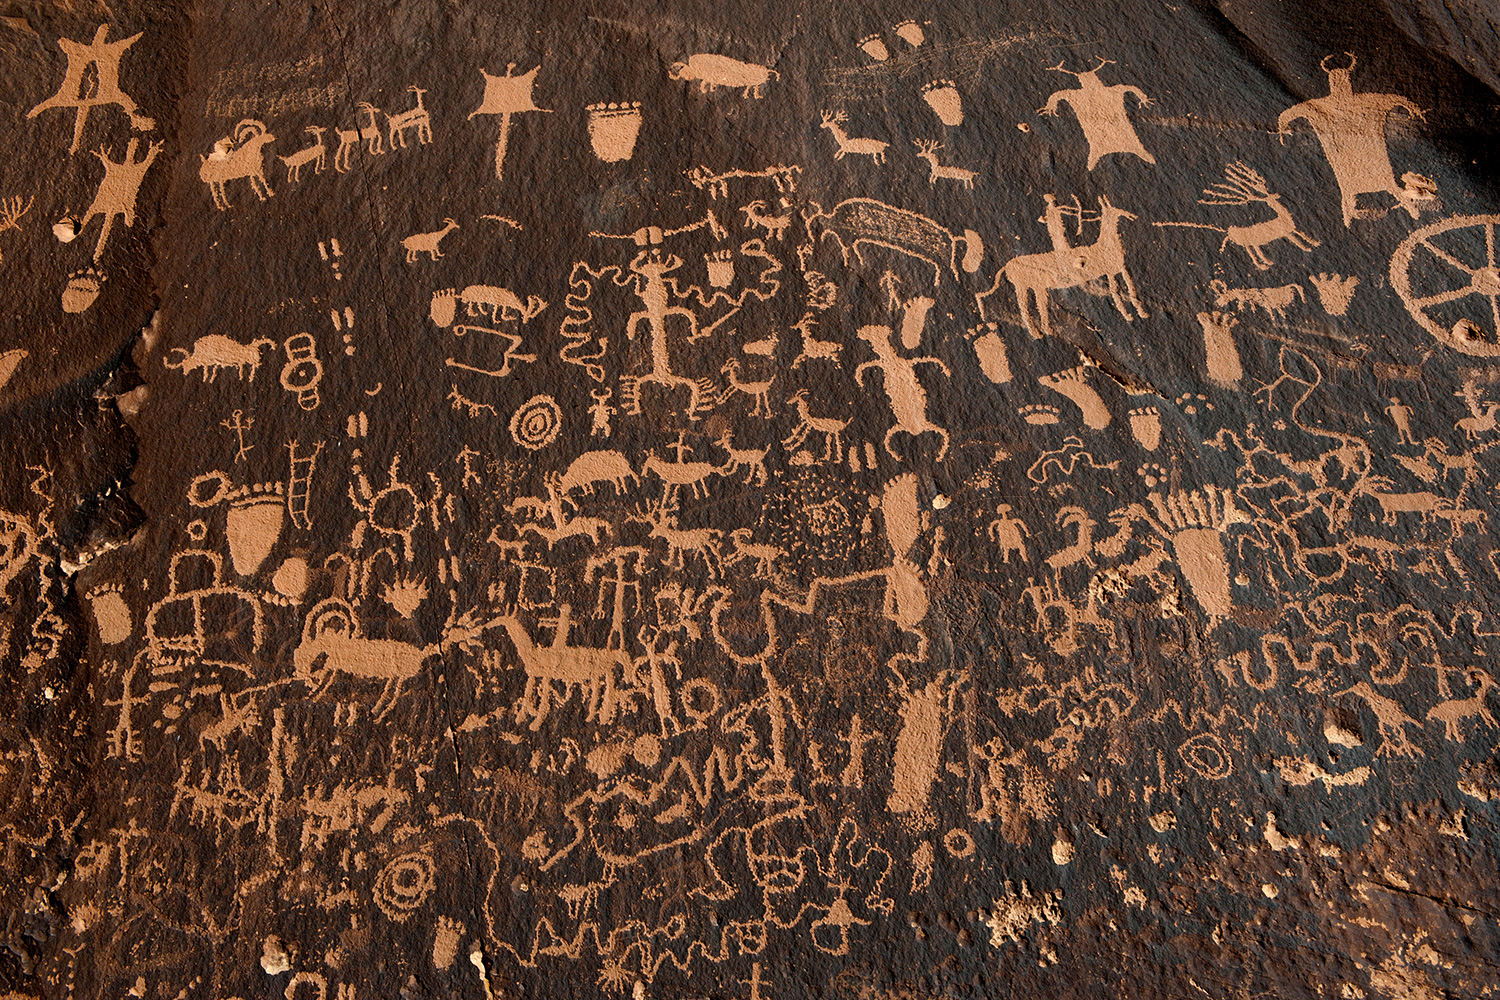 Hundreds of petroglyphs cover Newspaper Rock, in Bears Ears National Monument, Utah, next to the Naajo Nation, on October 29, 2017. The photo shows a dark rock face covered with hundreds of carved depictions of humans and animals. REUTERS/Andrew Cullen